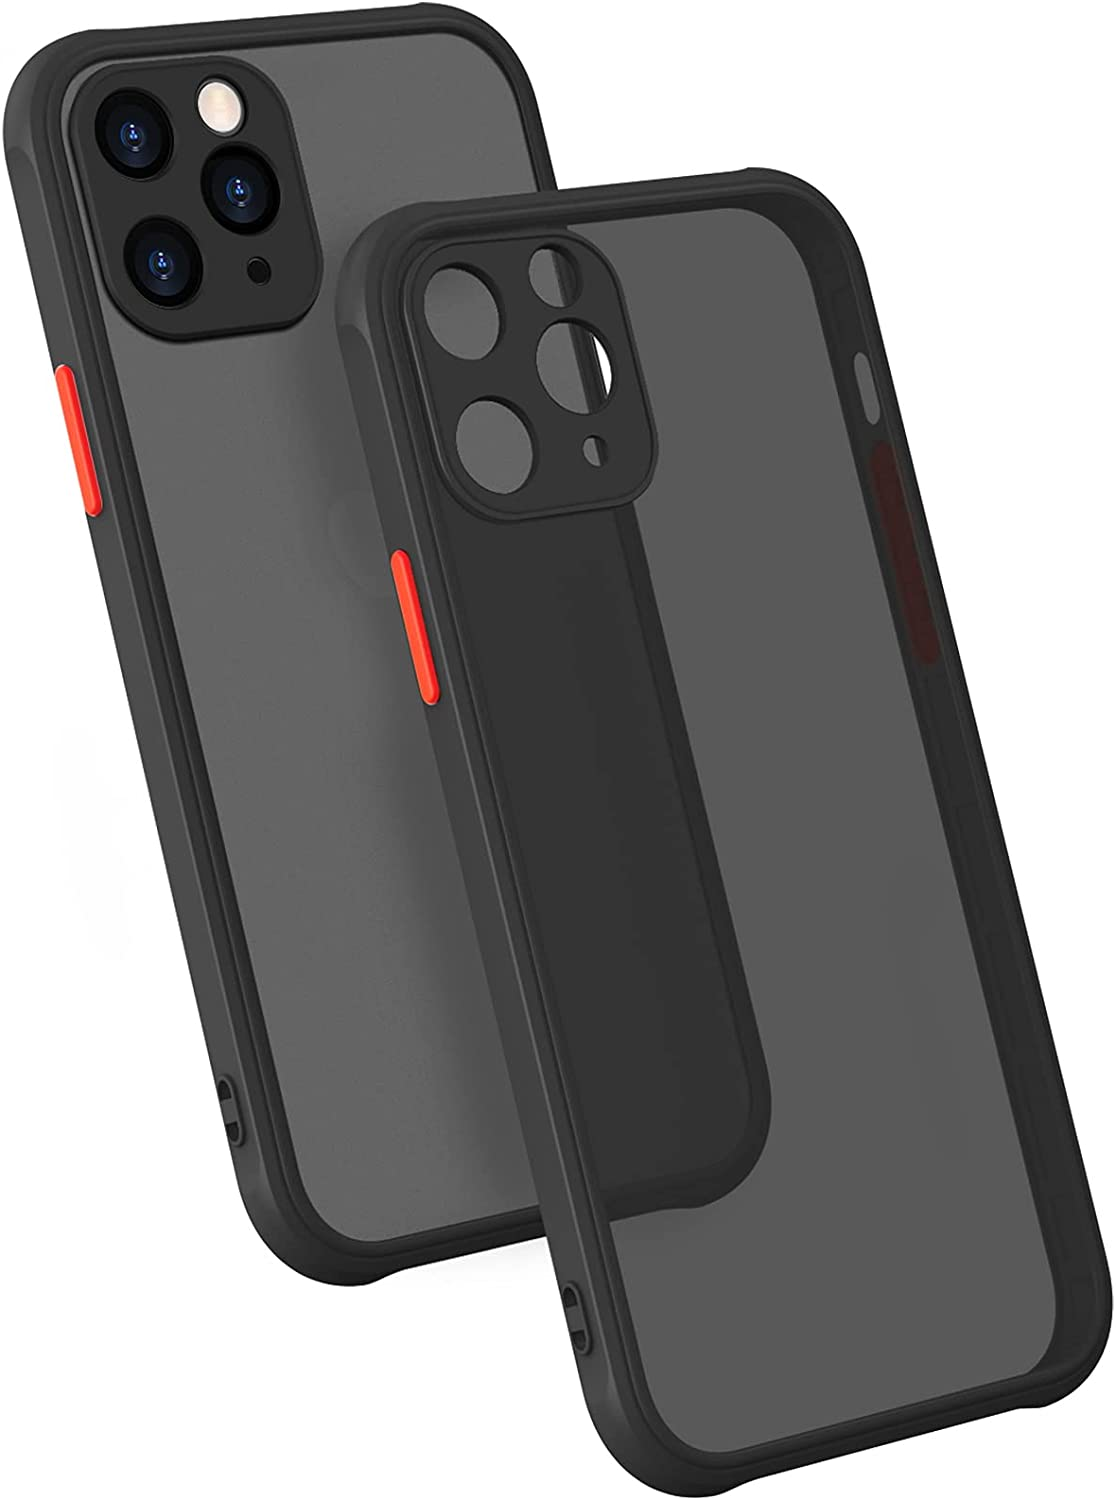 MONGKEYA iPhone 11 Pro Max Case, 6.5 inch, Translucent Matte Hard PC Back with Soft Silicone Edge, Slim Shockproof, Drop Protective Phone case for iPhone 11 Pro Max, Black